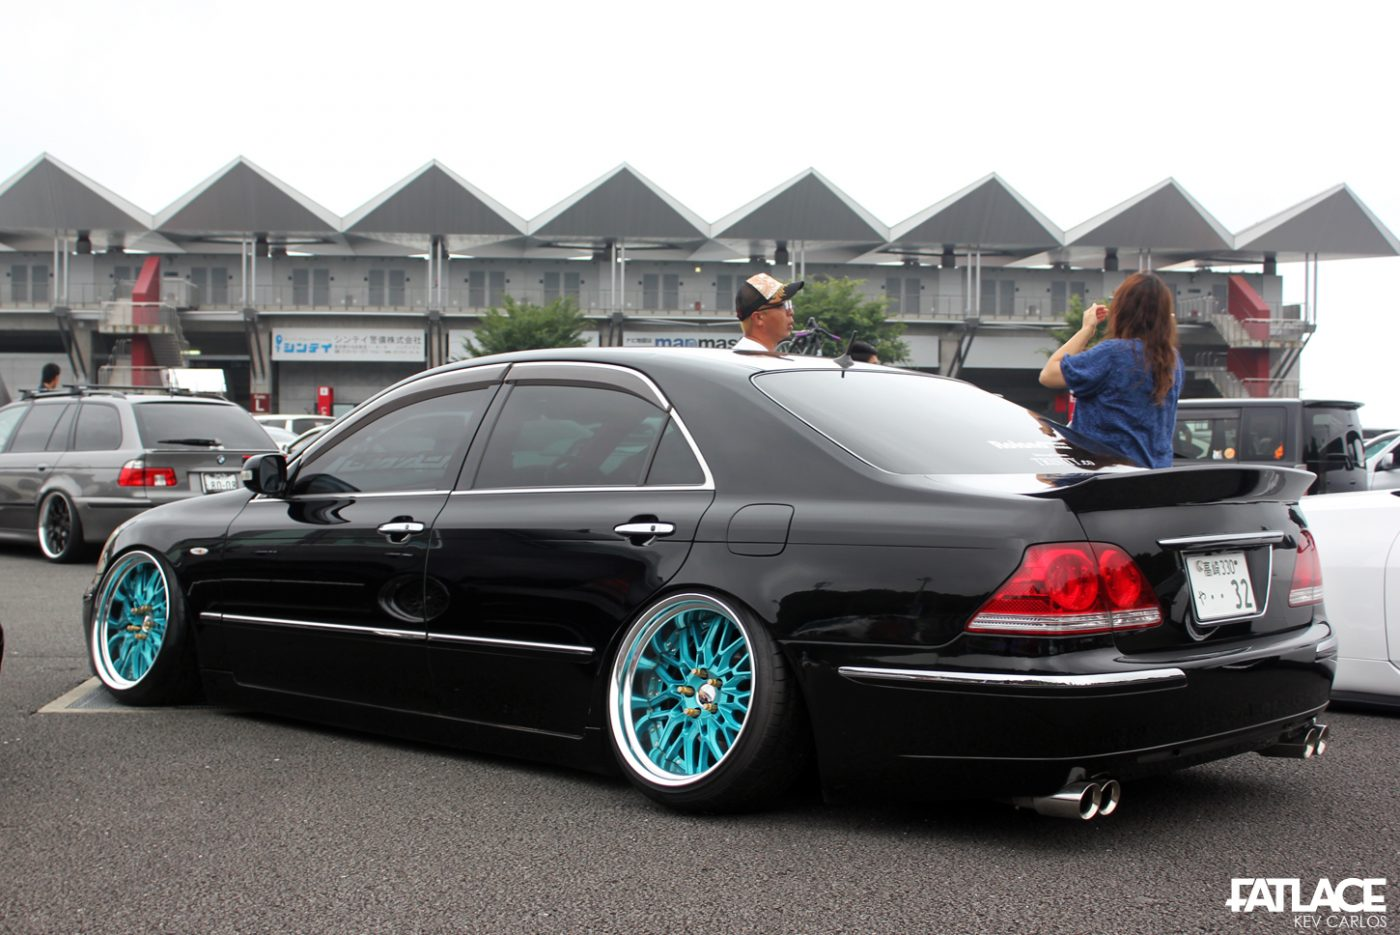 VIP Style, Offset Kings Japan 2015 - Fatlace™ Since 1999